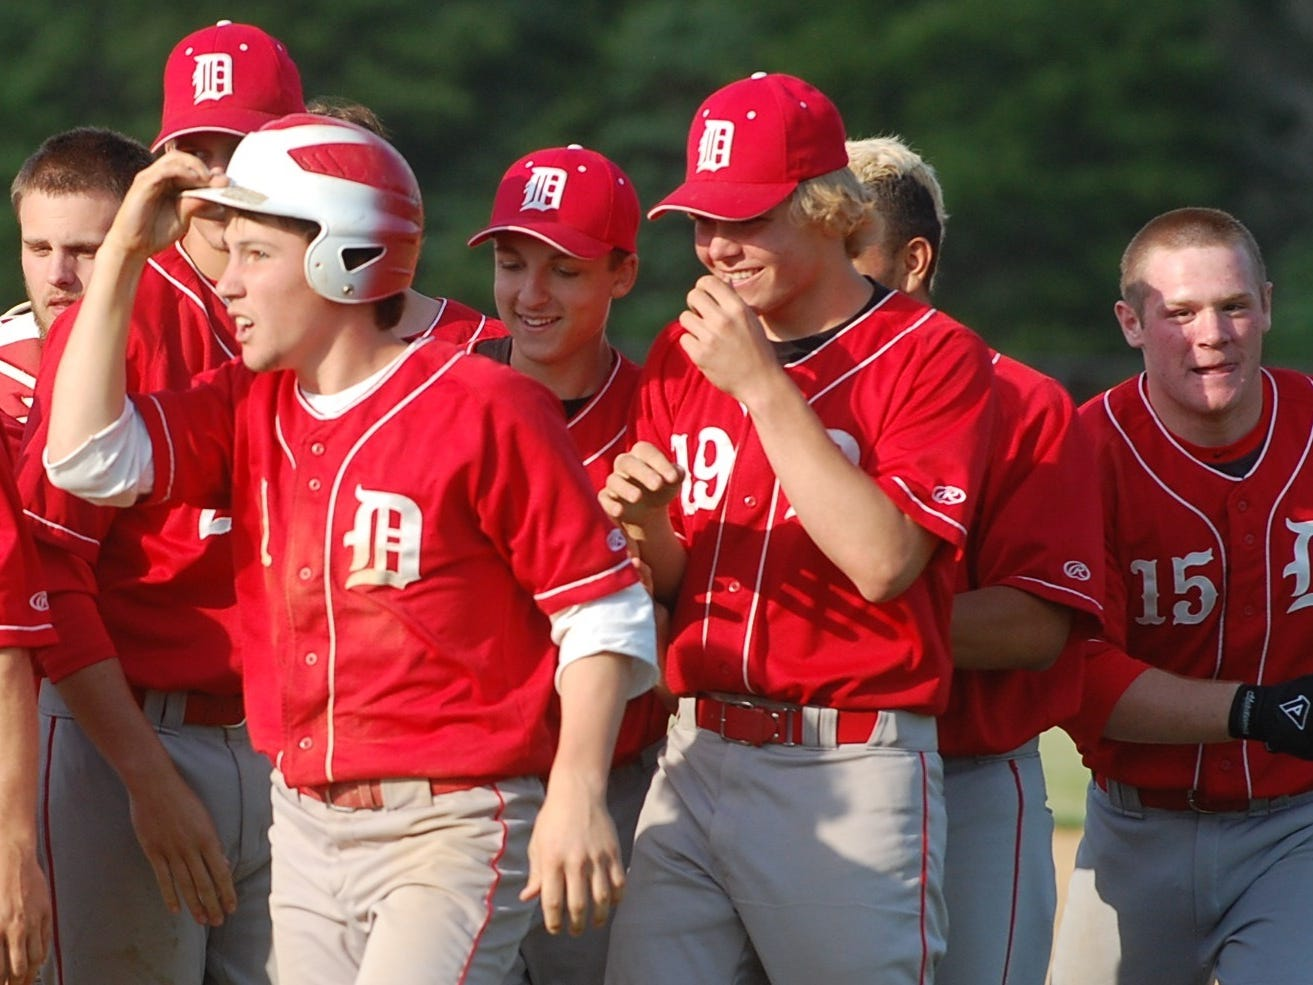 Delsea celebrates after Tom Carney (with helmet) was hit by a pitch Friday to drive in the winning run.